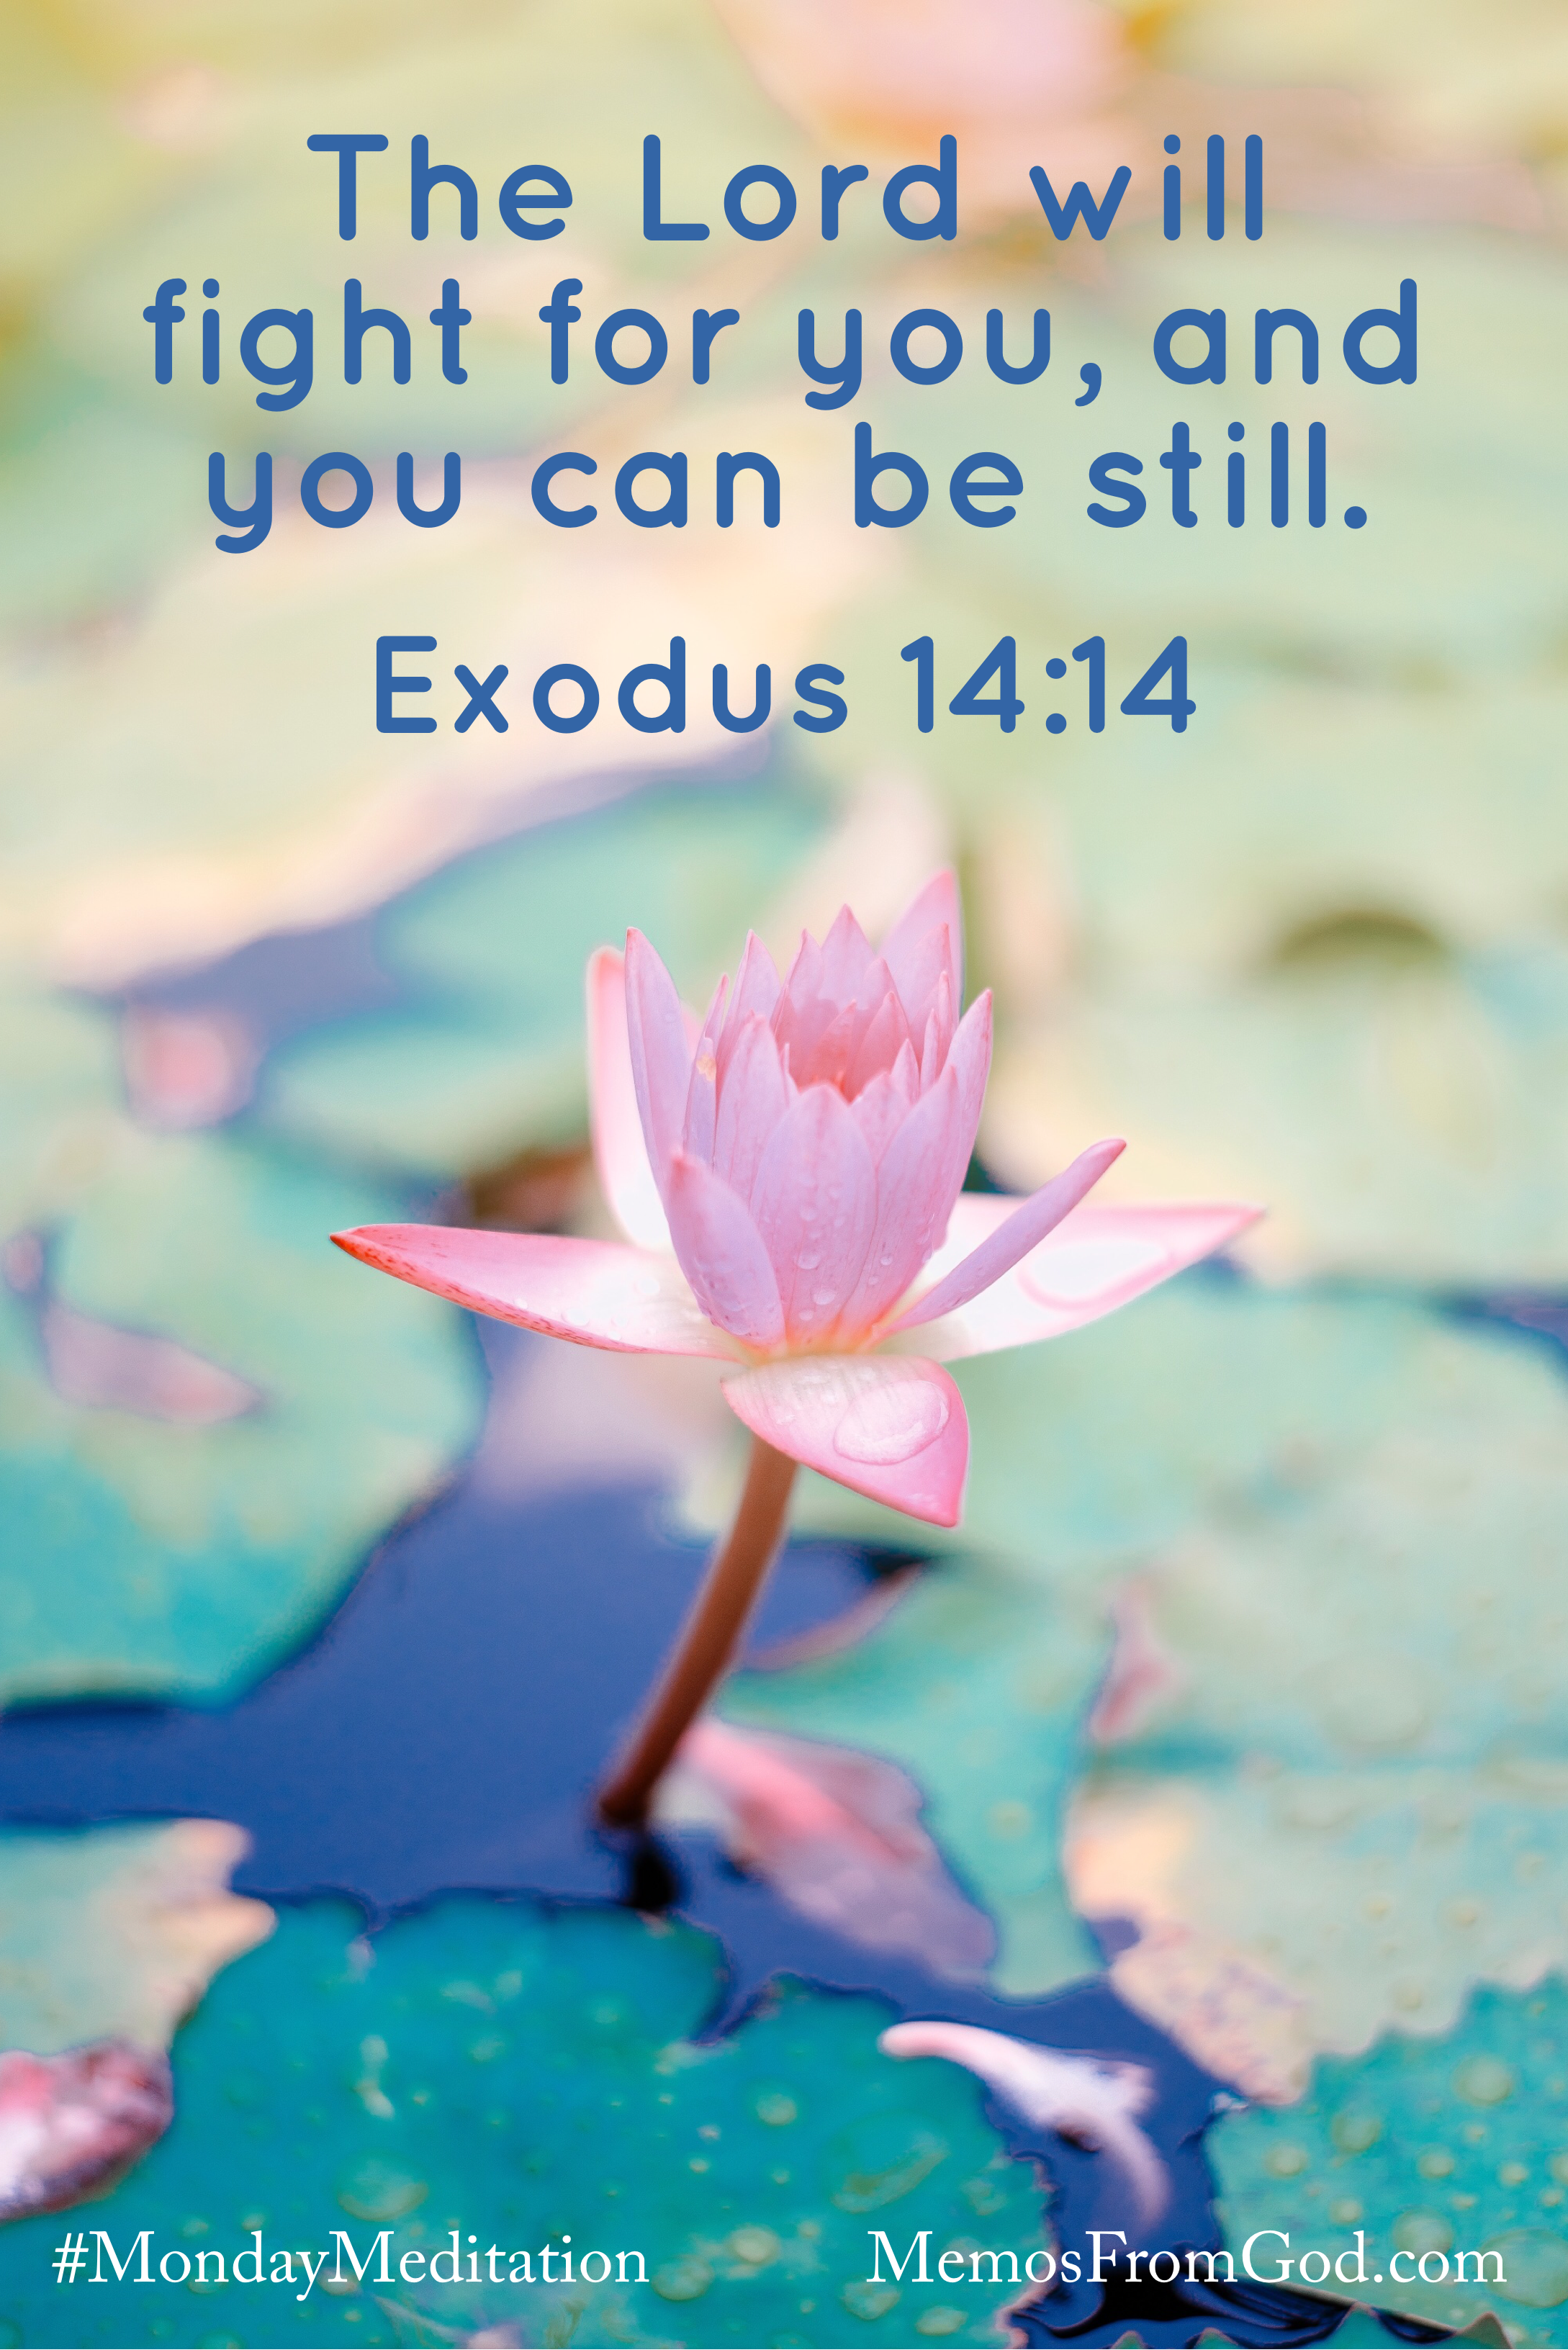 A pink water lily blooming among teal lily pads and deep blue water. Caption: The Lord will fight for you, and you can be still. Exodus 14:14